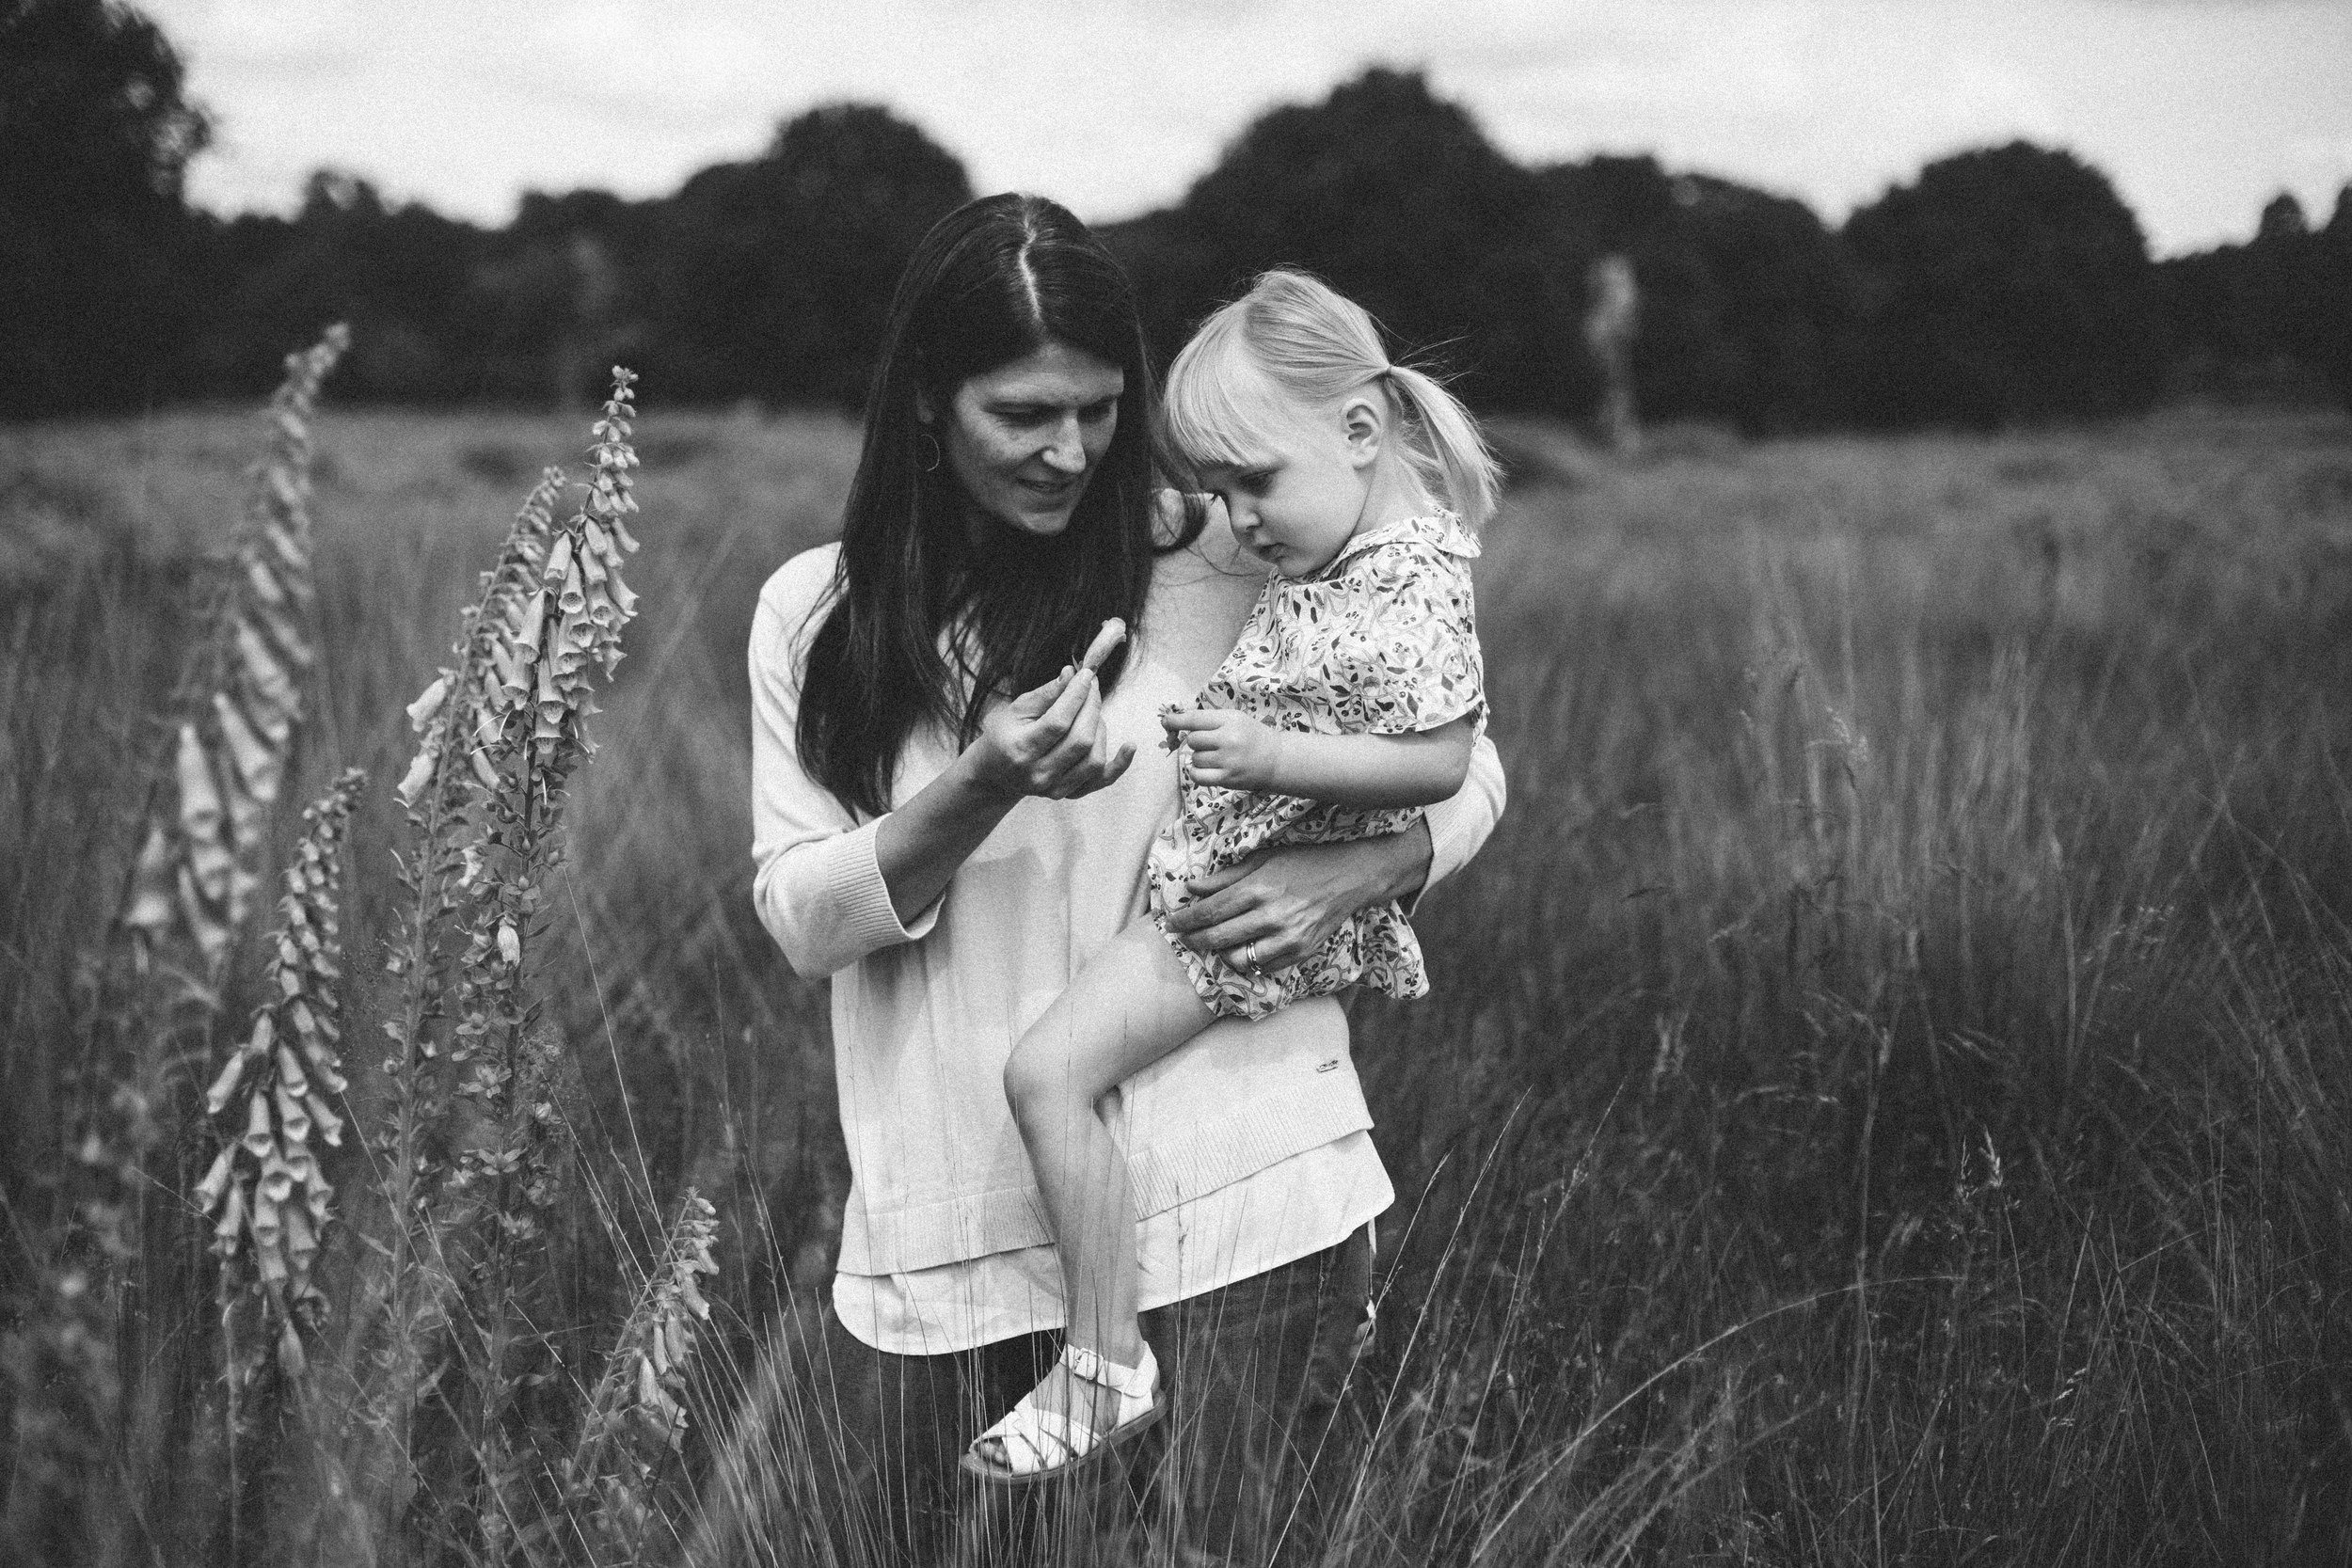 LittleKin_Photography_family_photoshoot_richmond_helene-66.jpg